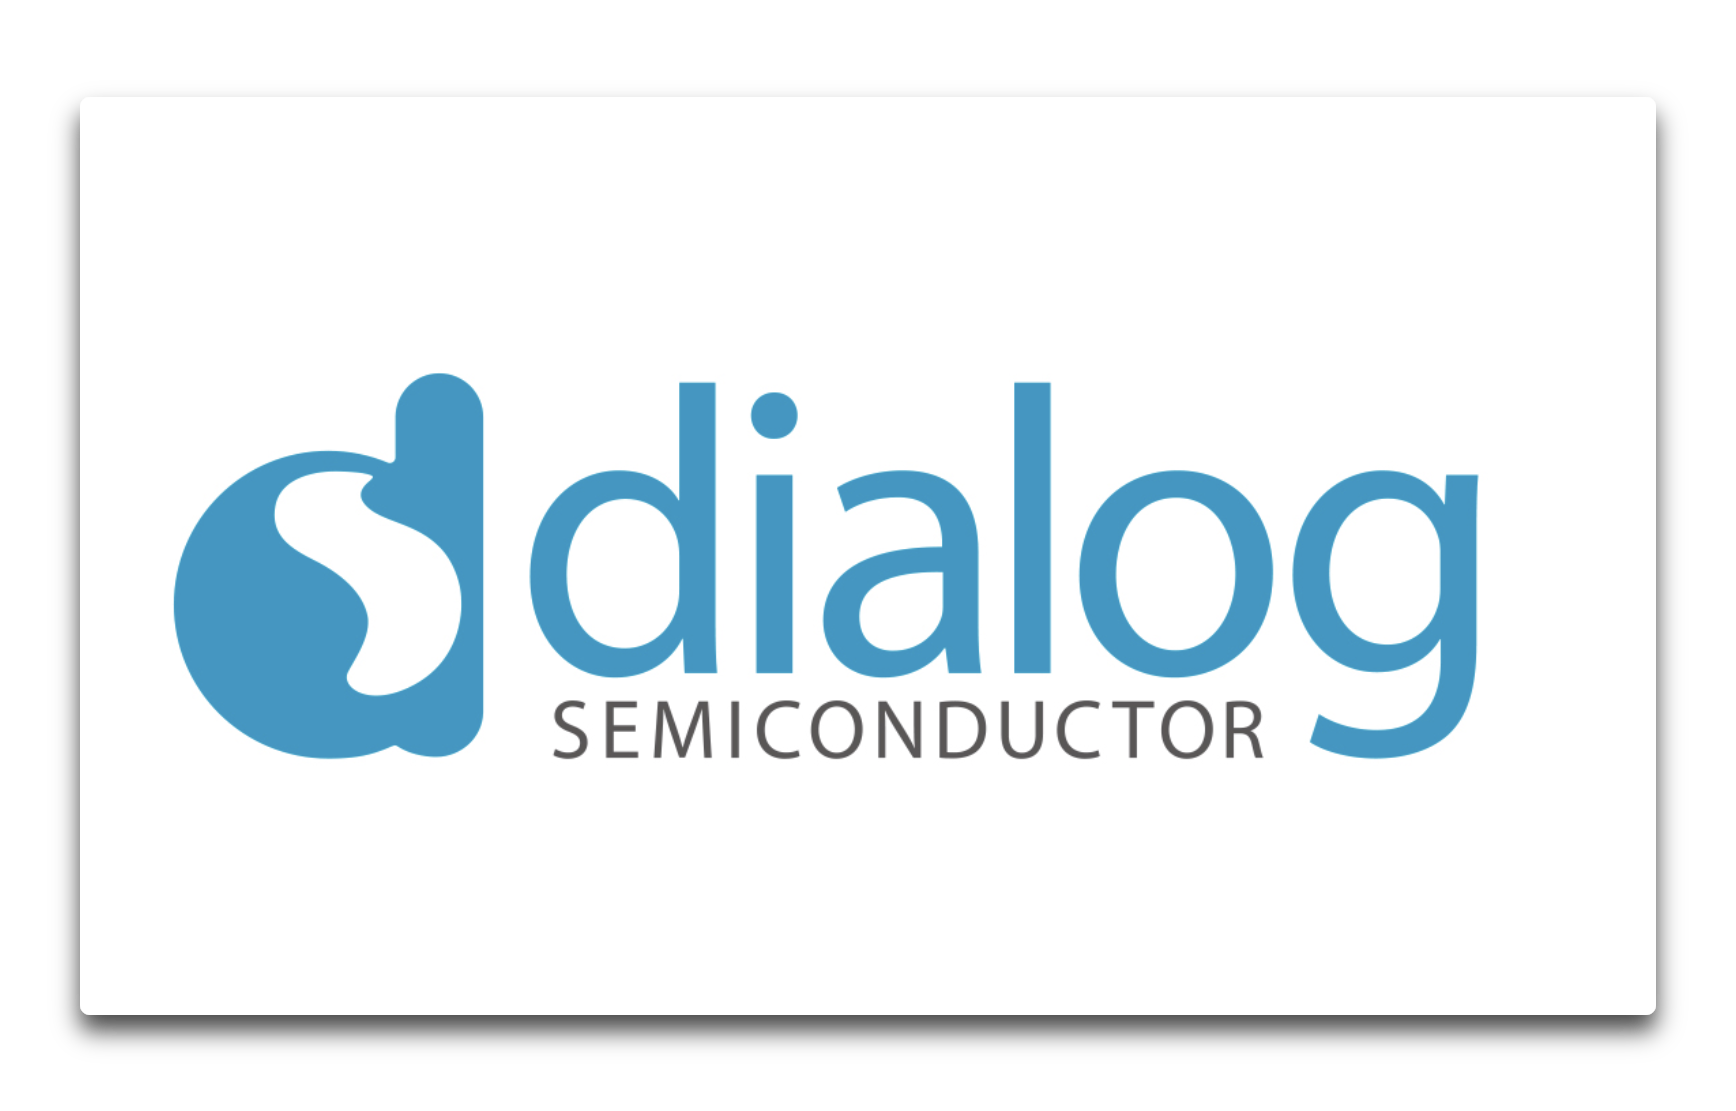 Apple、iPhoneチップメーカーDialog Semiconductorを6億ドルで買収